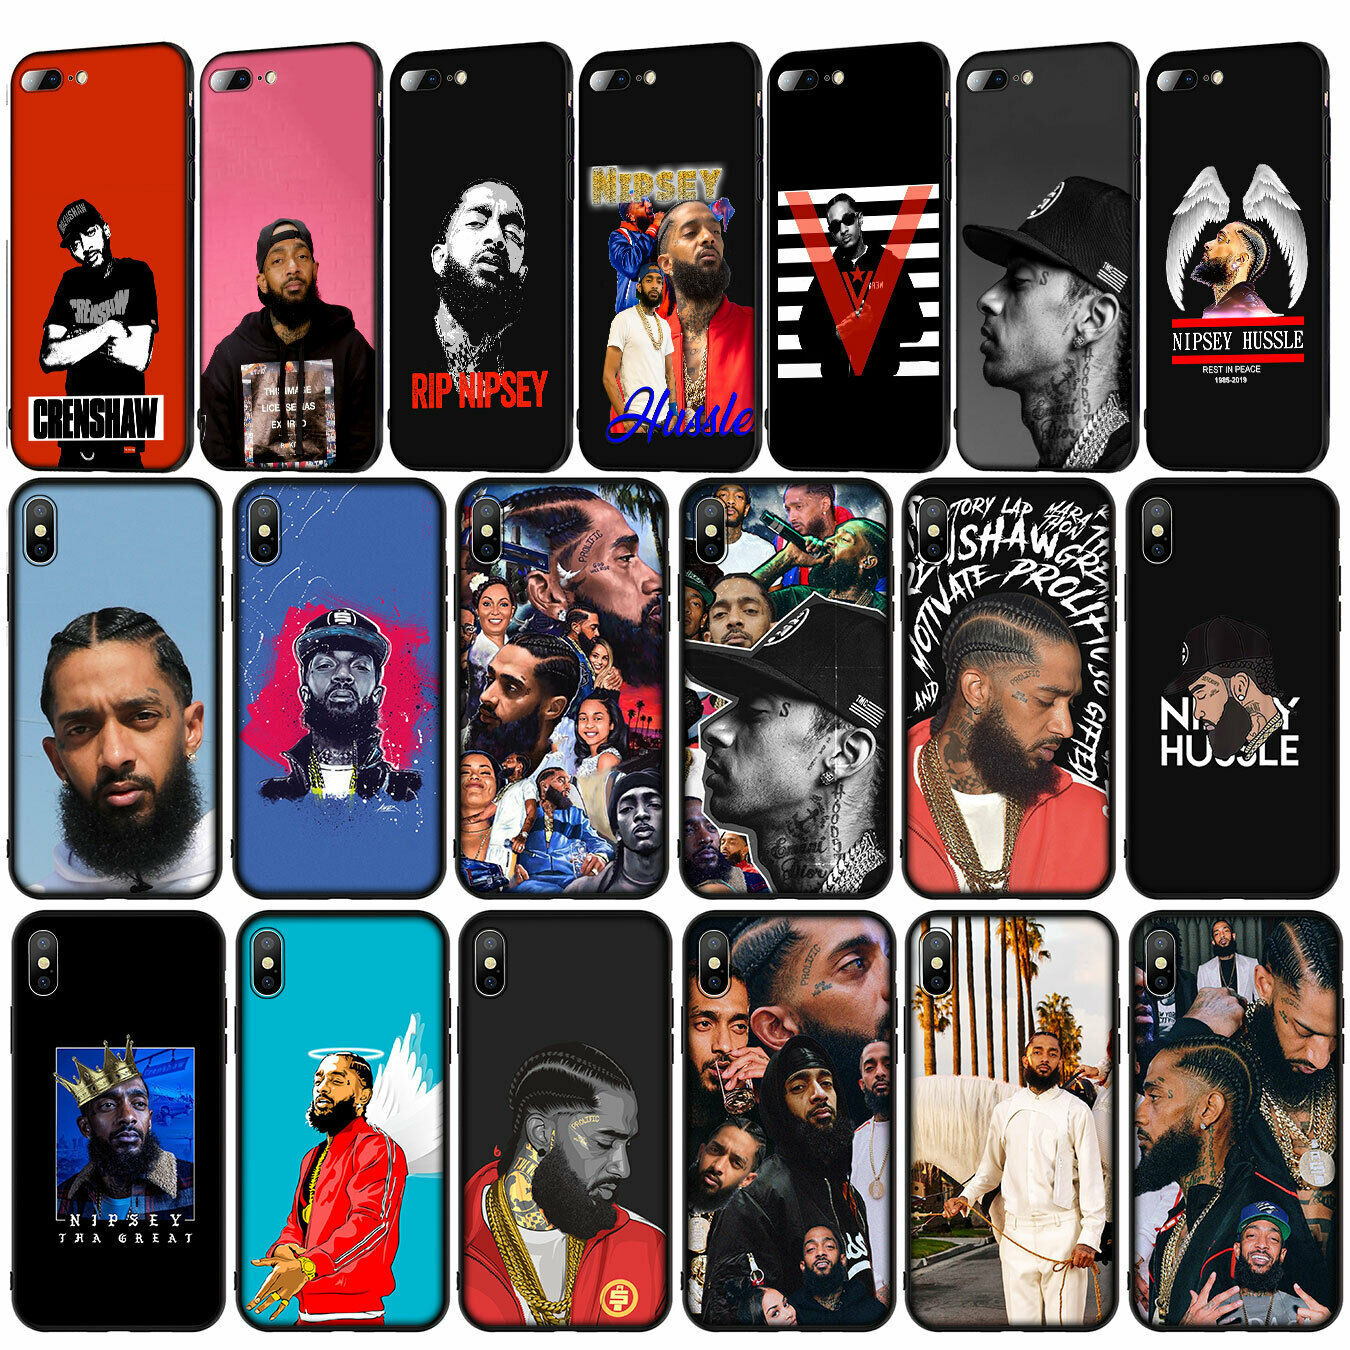 Headband Inspired by Nipsey Hussle Phone Case Compatible With Iphone 7 XR 6s Plus 6 X 8 9 11 Cases Pro XS Max Clear Iphones Cases TPU Blanket 4000096741897 Plus Blue Blanket